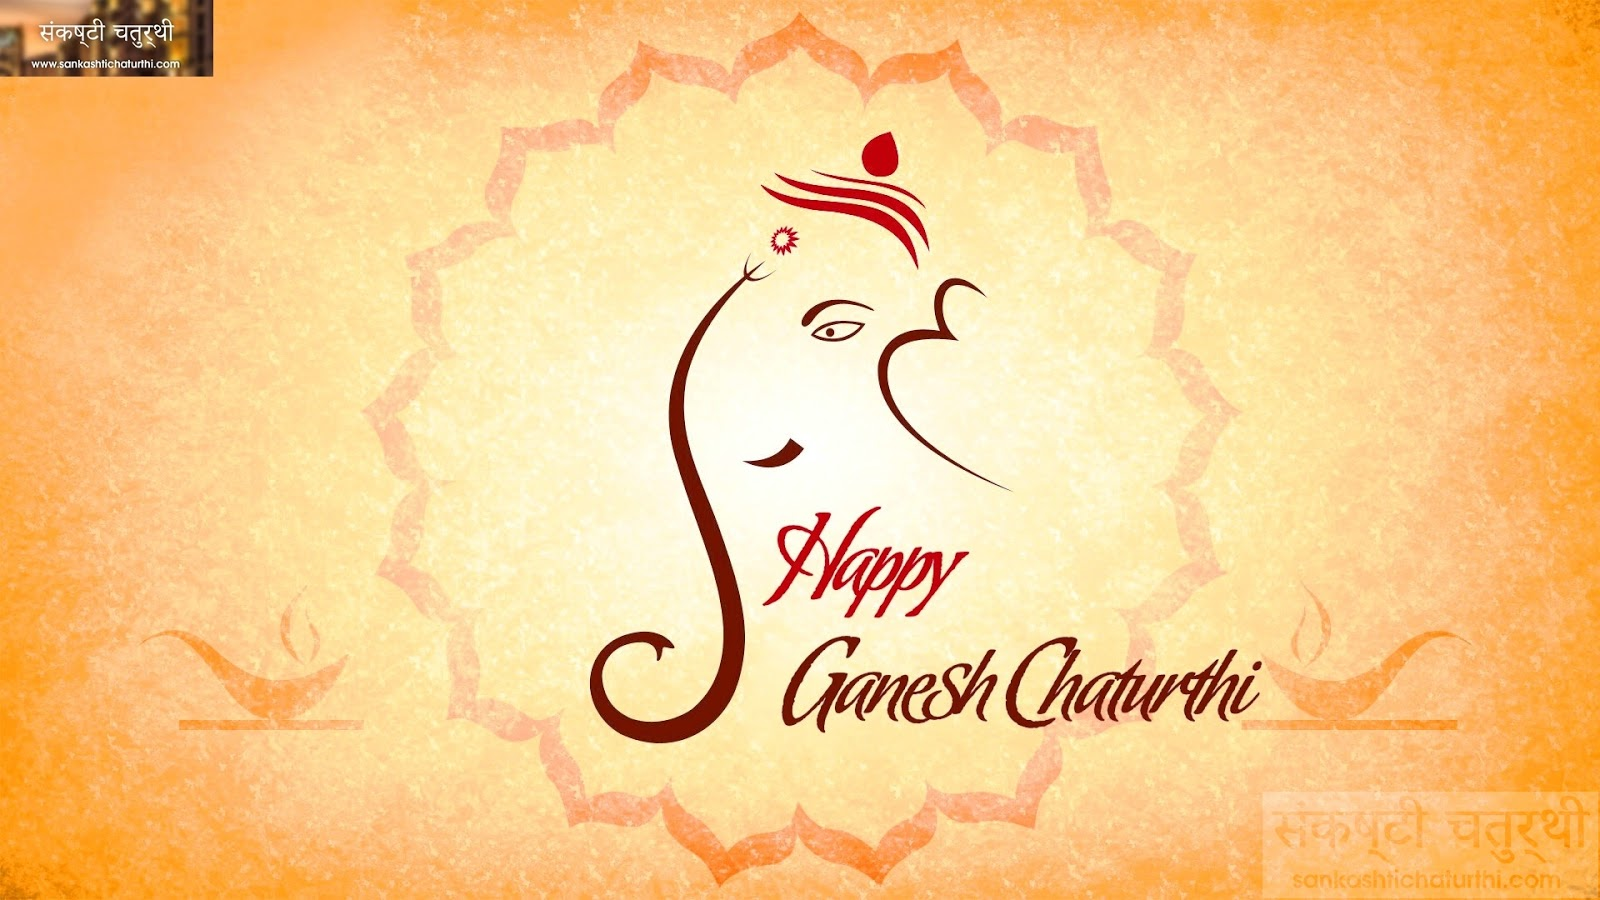 Amazing Wallpaper Name Thakur - Ganesh-Chaturthi-wishes-wallpaper  Best Photo Reference_593593.jpg